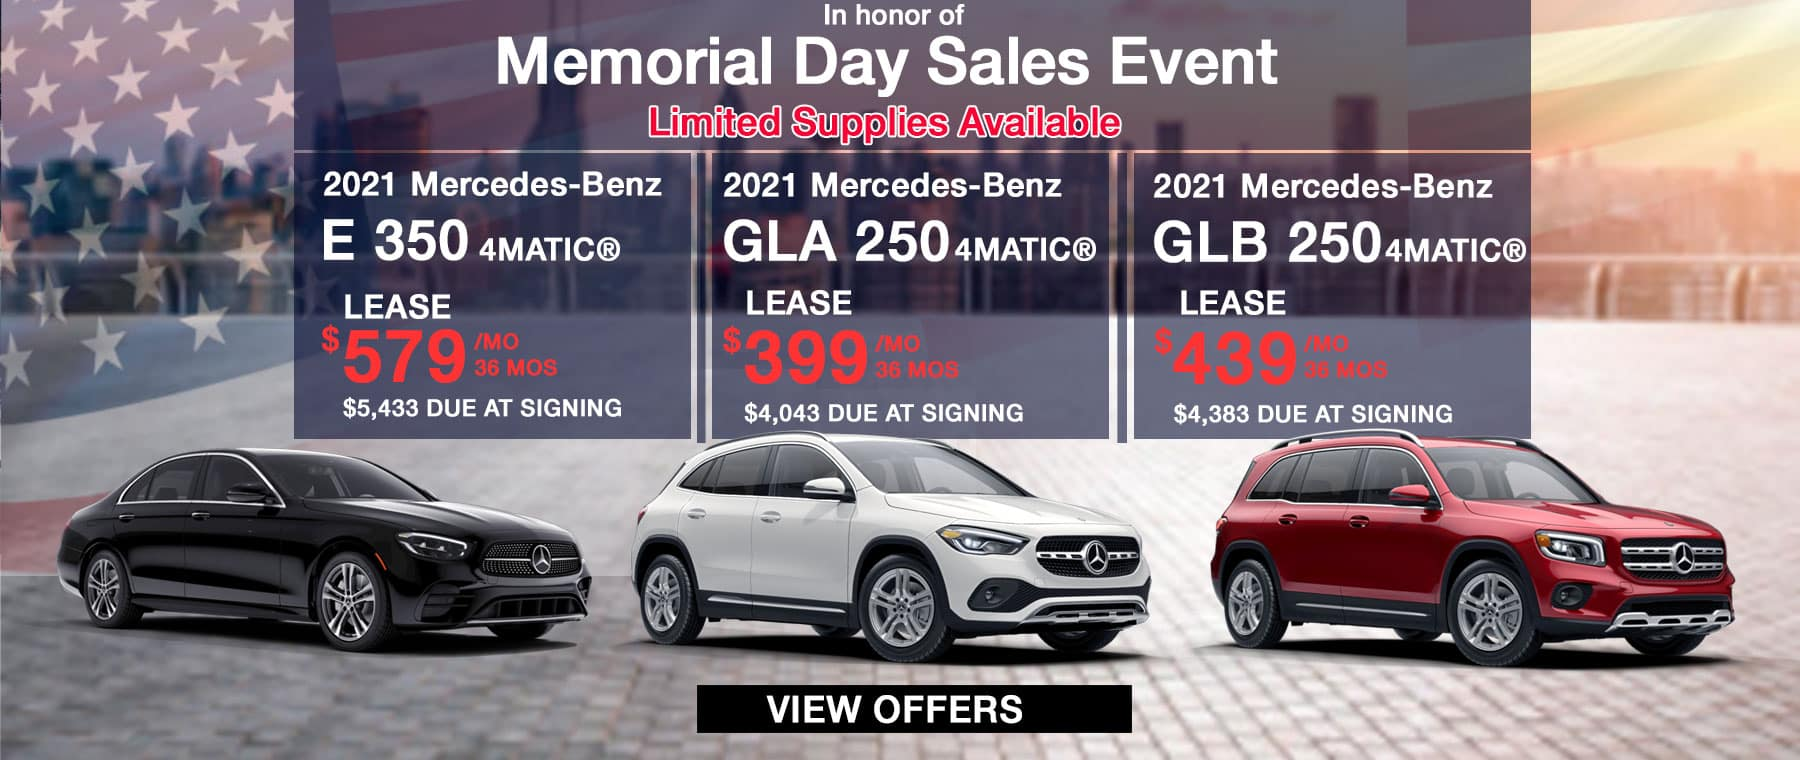 May-Mercedes-Benz-Cherry-Hill-2